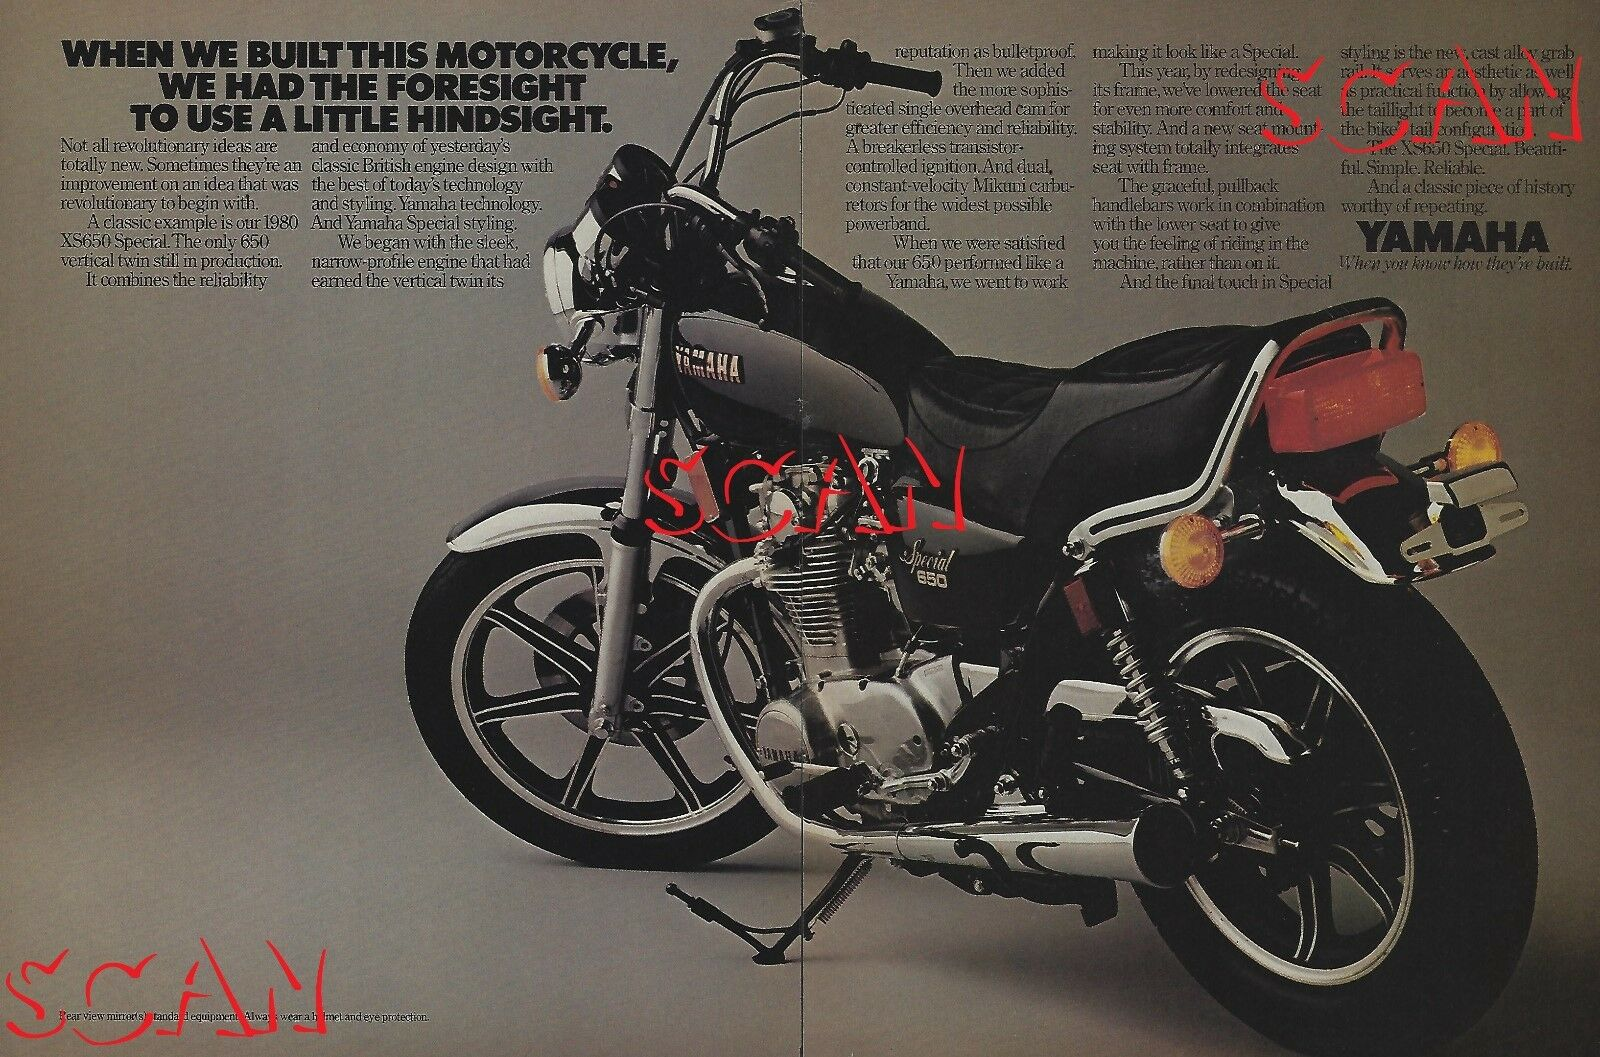 1980 Yamaha Xs650 Special Motorcycle Ad Vintage Magazine Yg1 Wiring Diagram 1 Of 2 See More